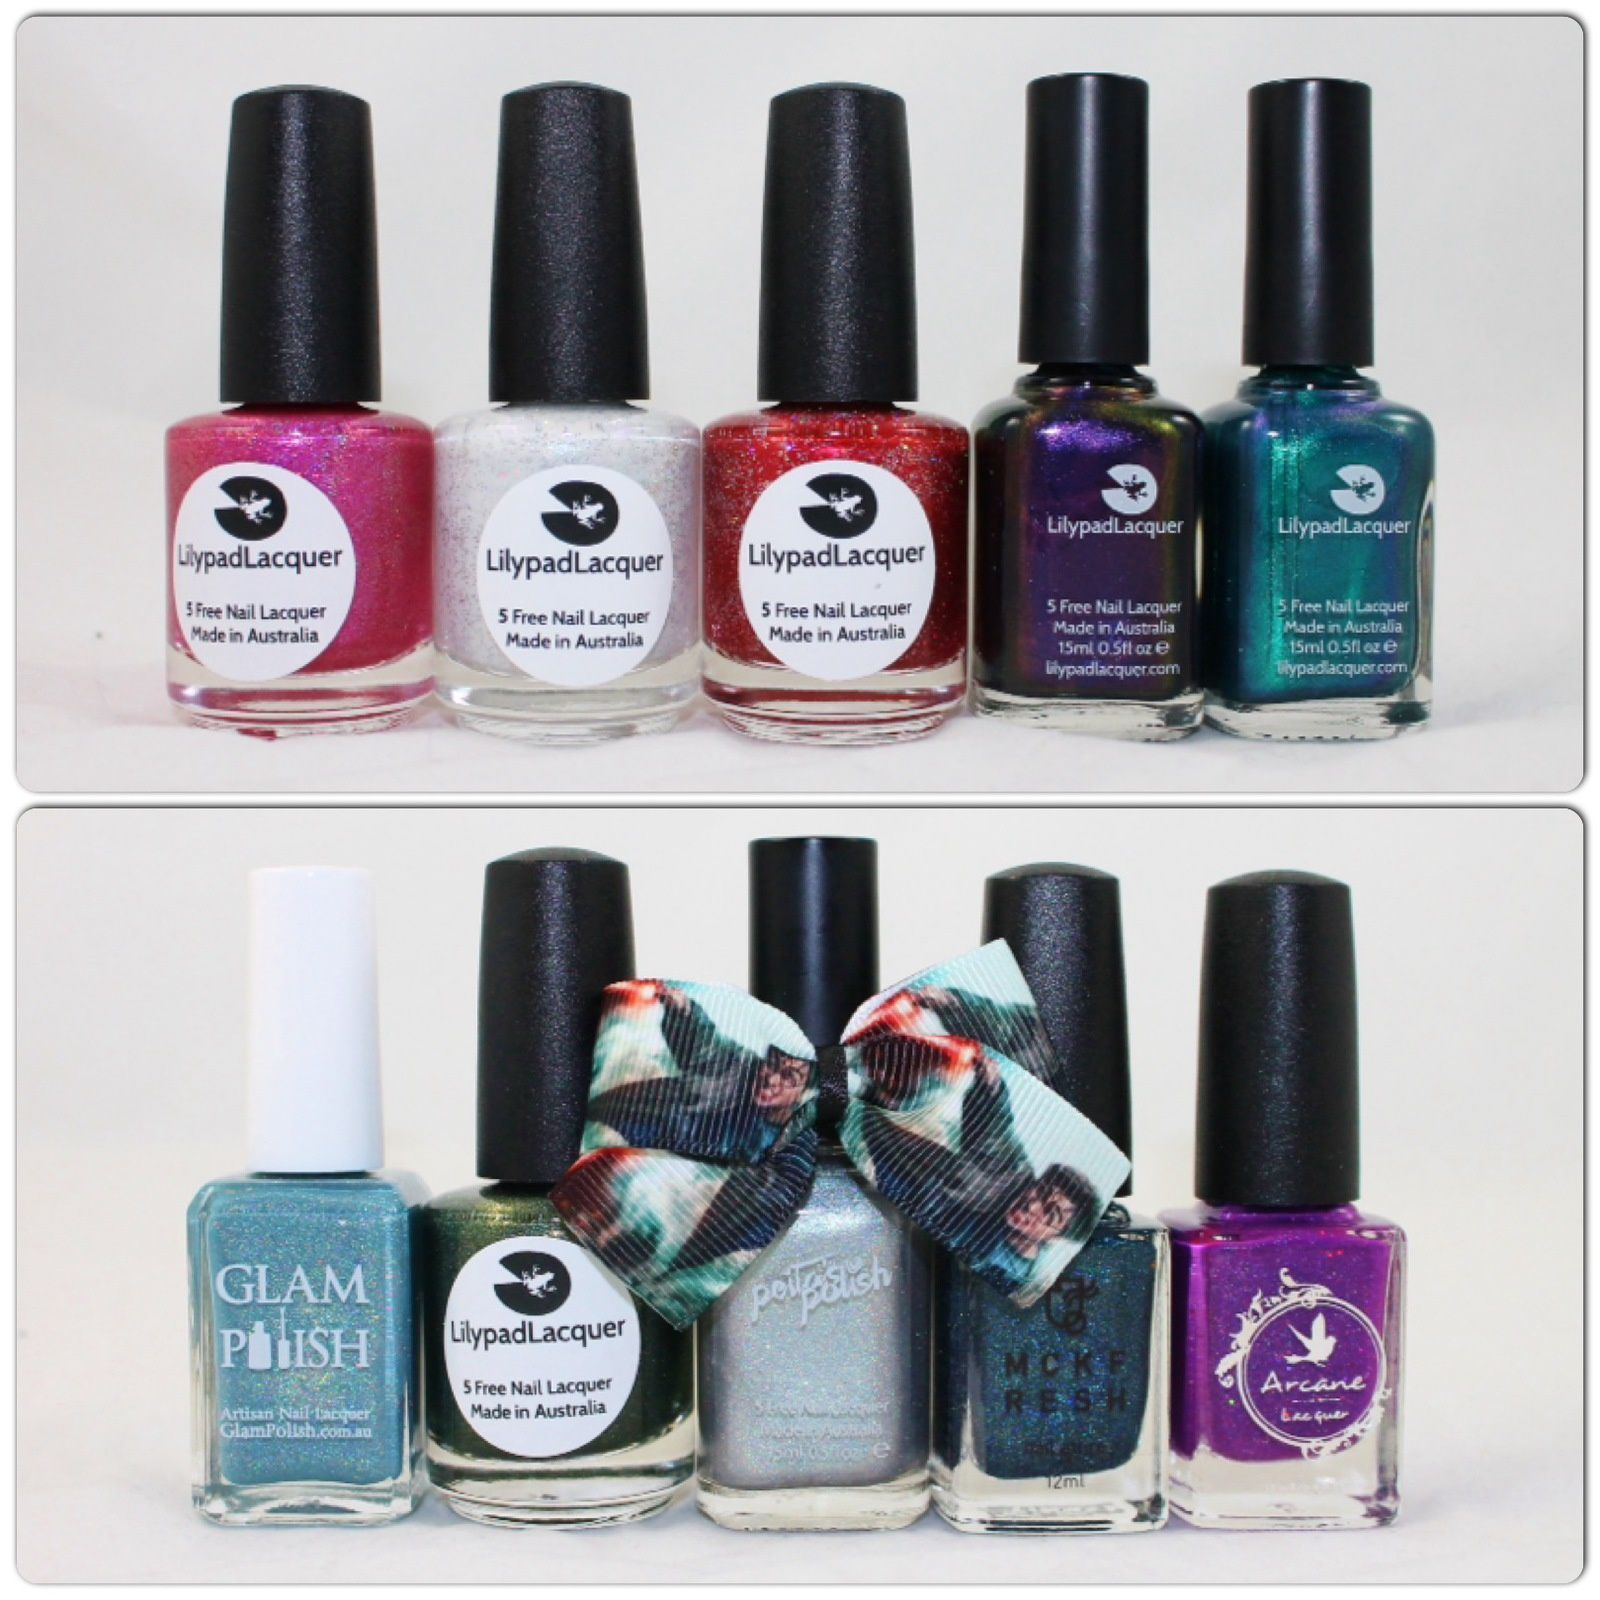 Lilypad Lacquer Pink Polish Preferred, United People, This is Home, Mysterious Ways & Aqueous. What's Indie Box - August 2015 - Harry Potter.